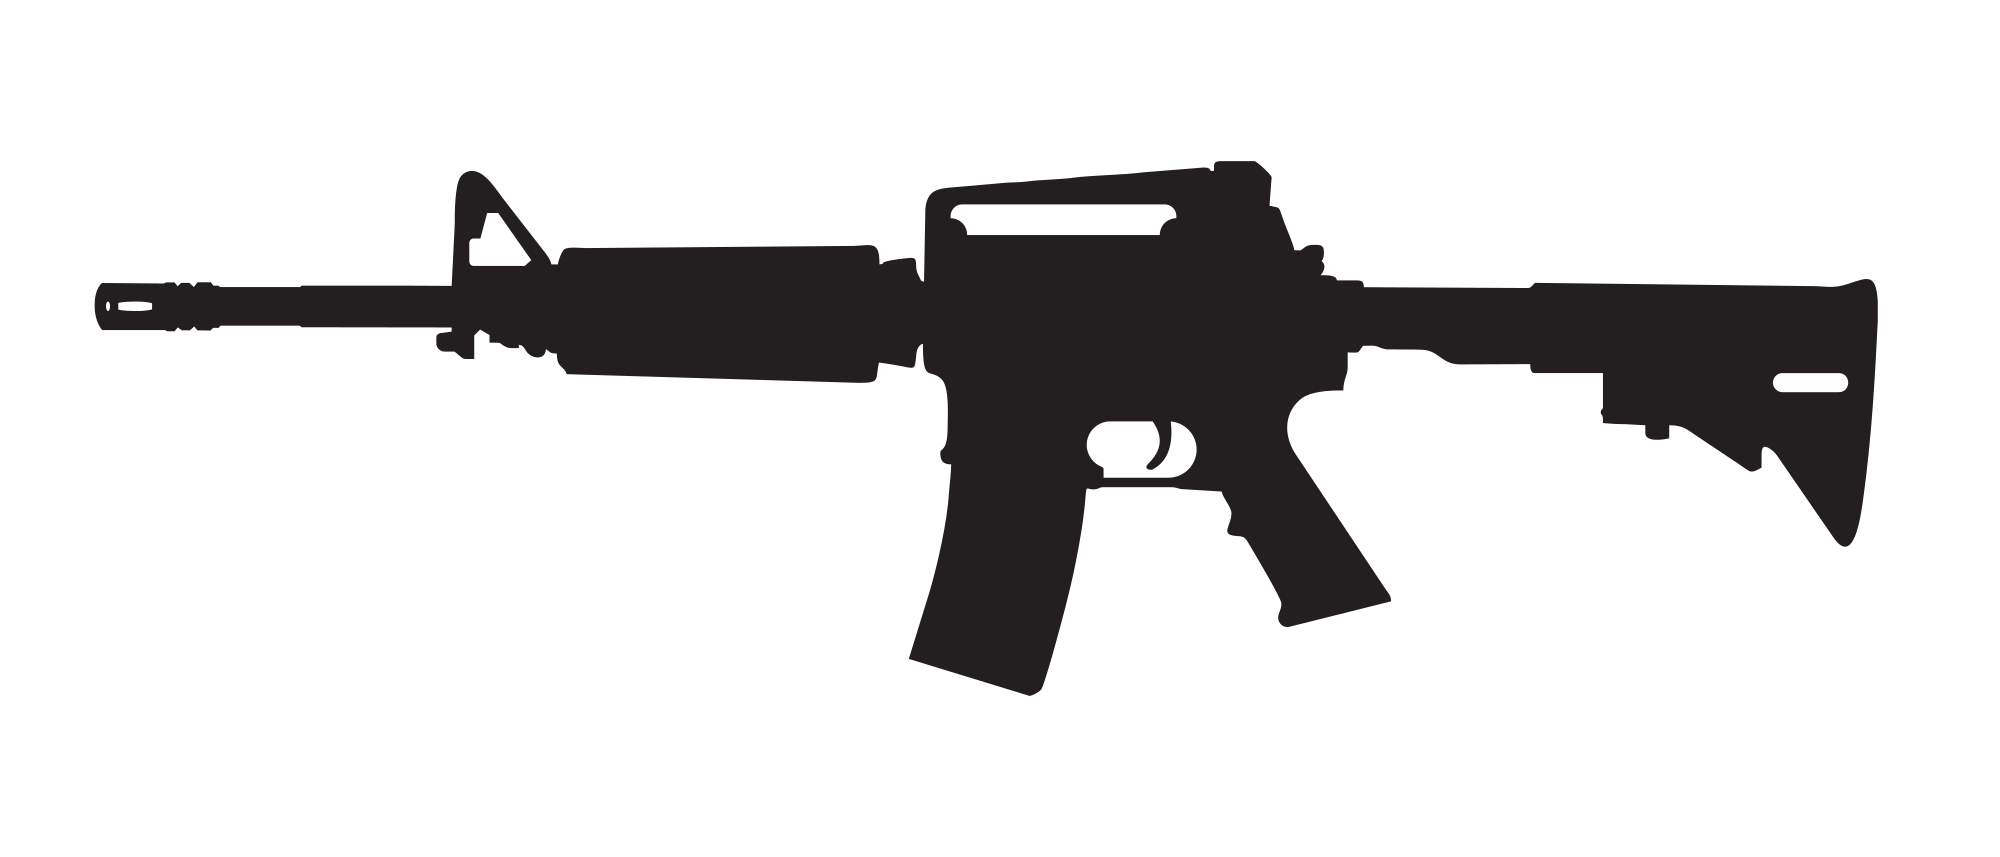 Revolver silhouette png. Colt at getdrawings com